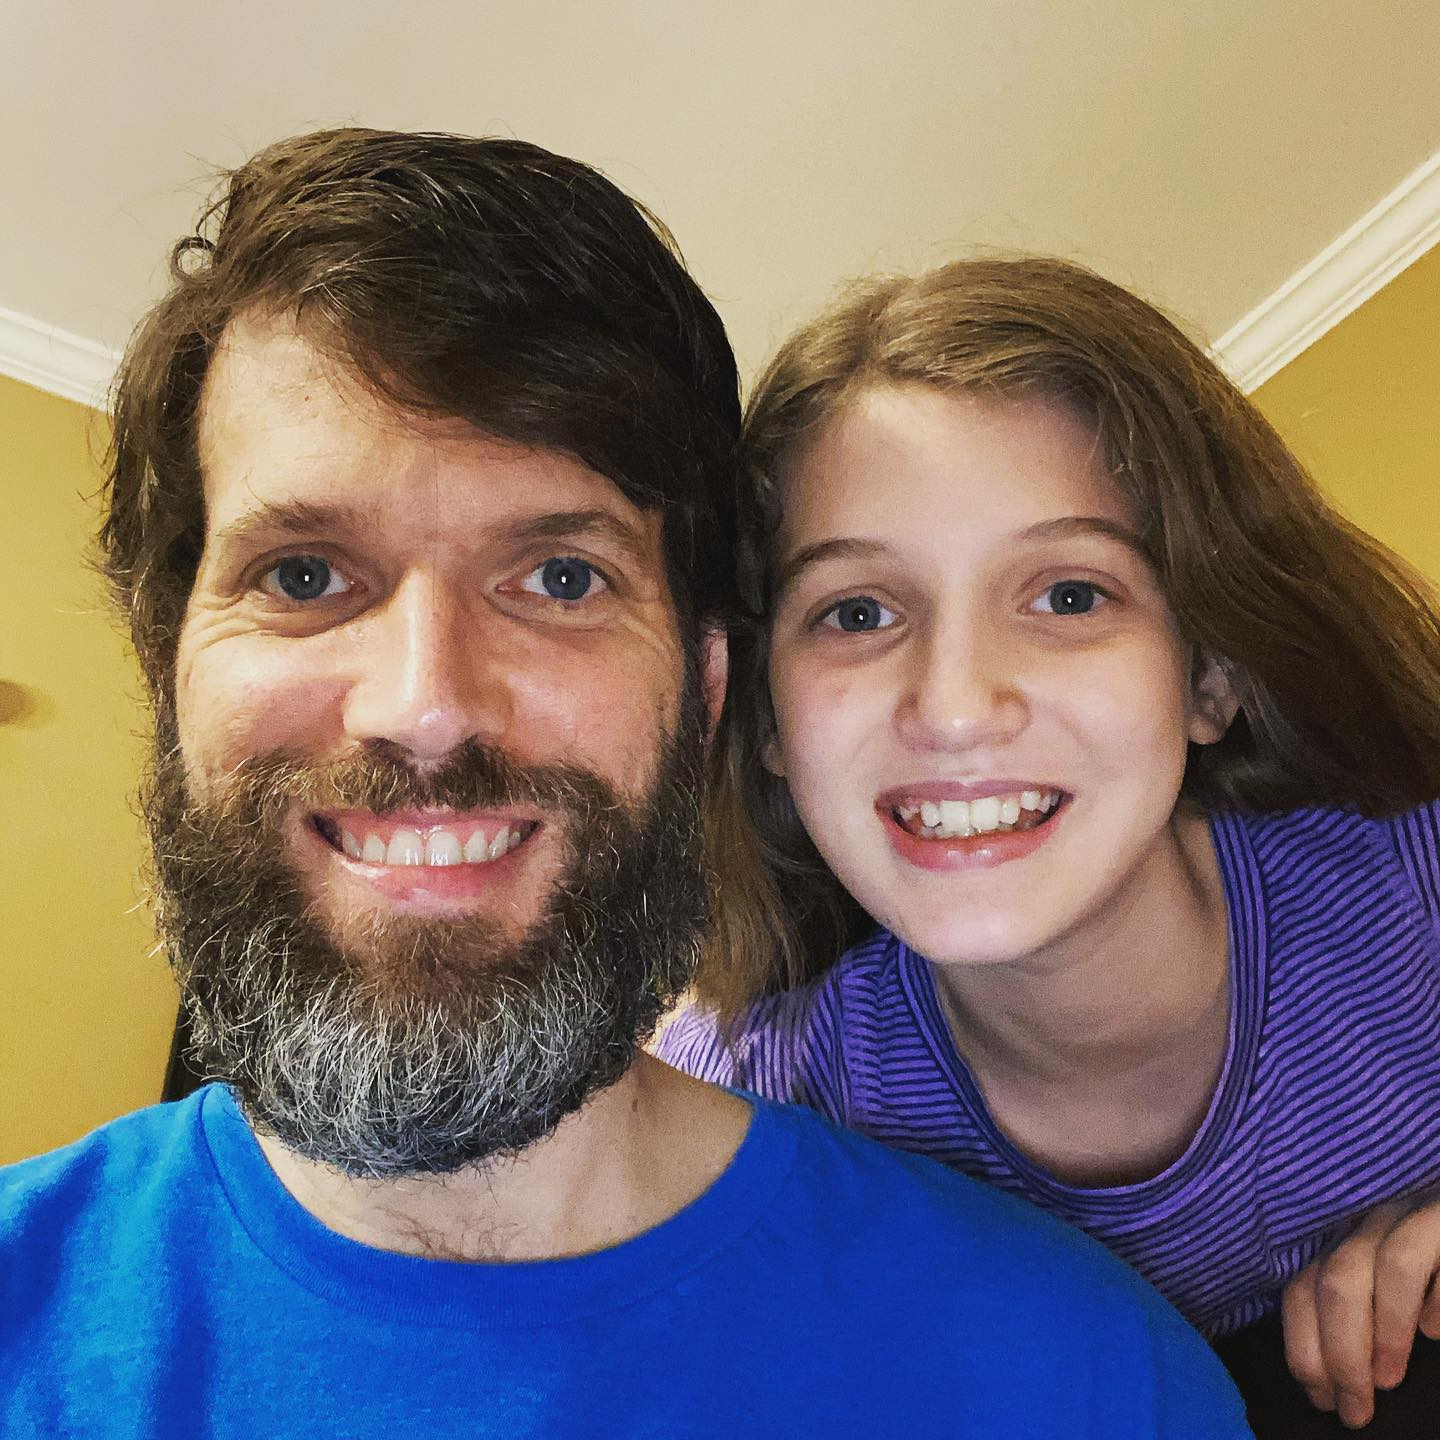 Beard update - Day 82. Sara wants me to make it to 100 before I trim it but I'm looking pretty haggard! #family #beard